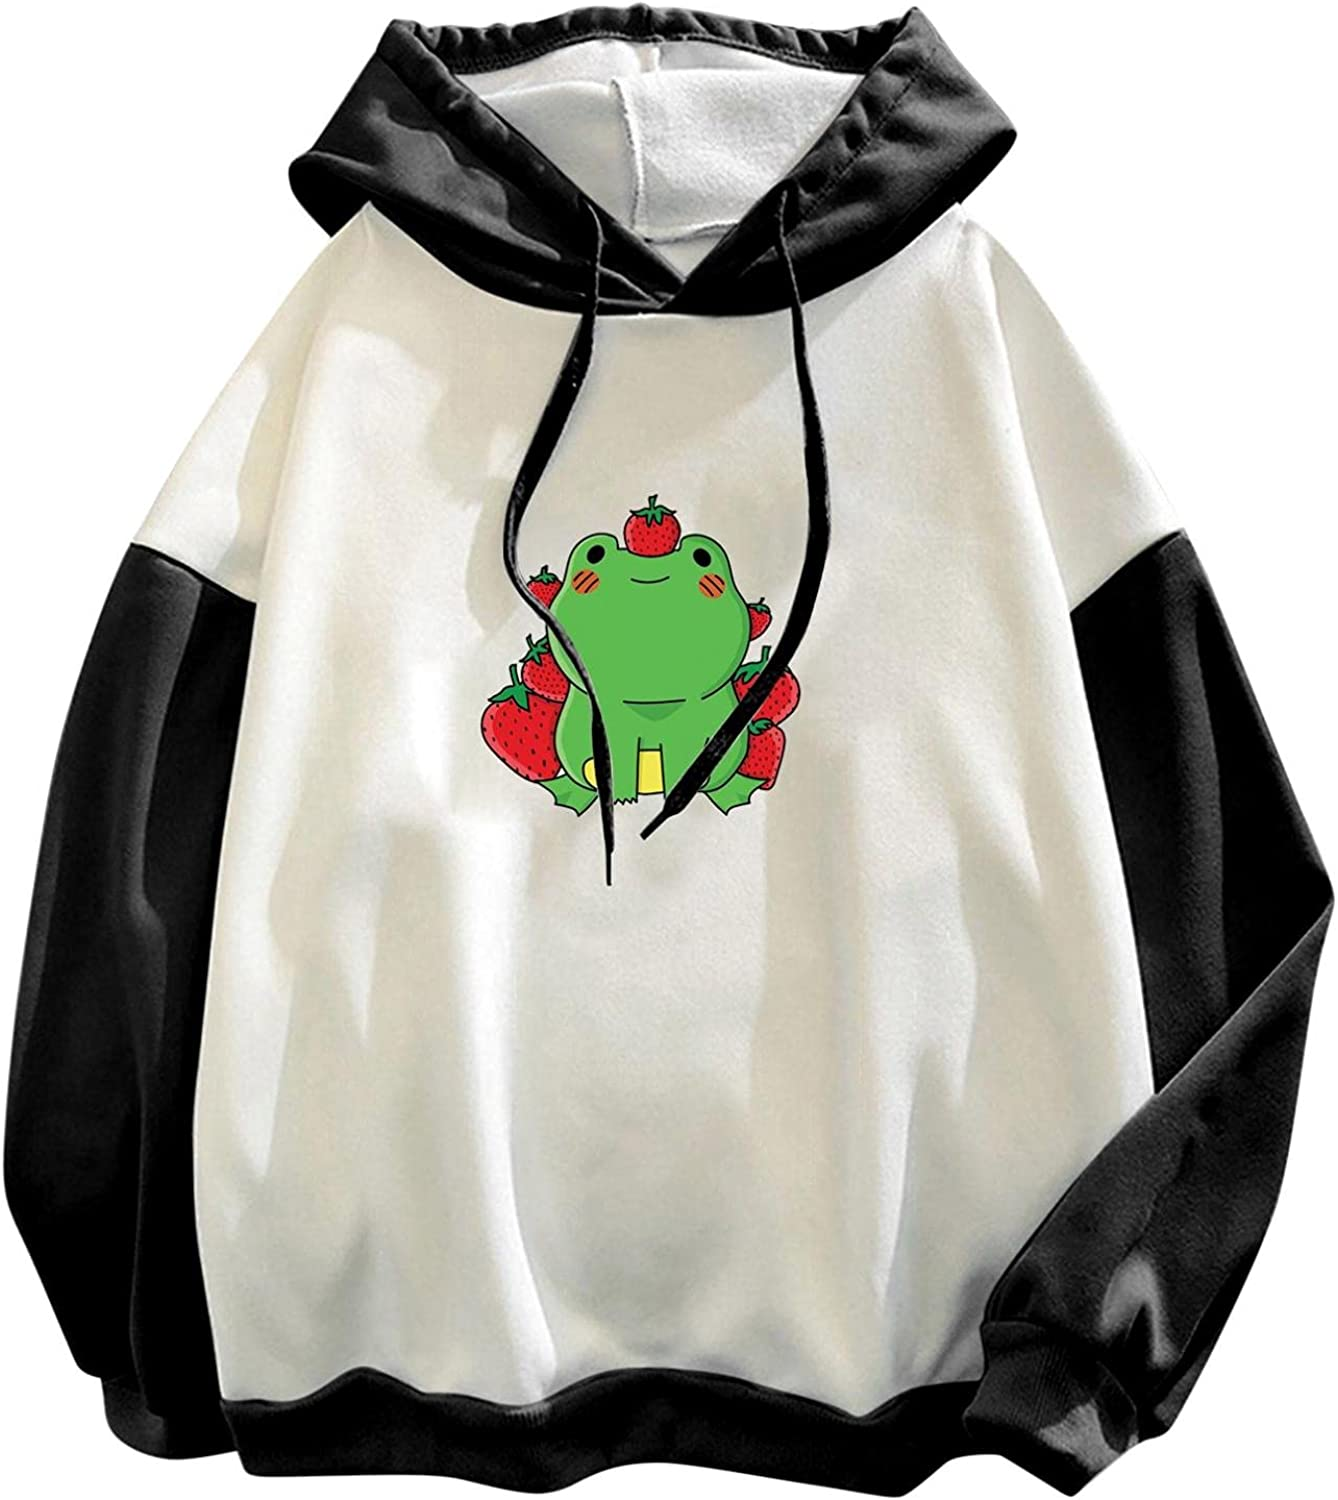 lucyouth Hoodies for Women Teens Girls Long Sleeve Casual Frog Plus Size New Cute Active Stitching Drawstring Sweatshirt